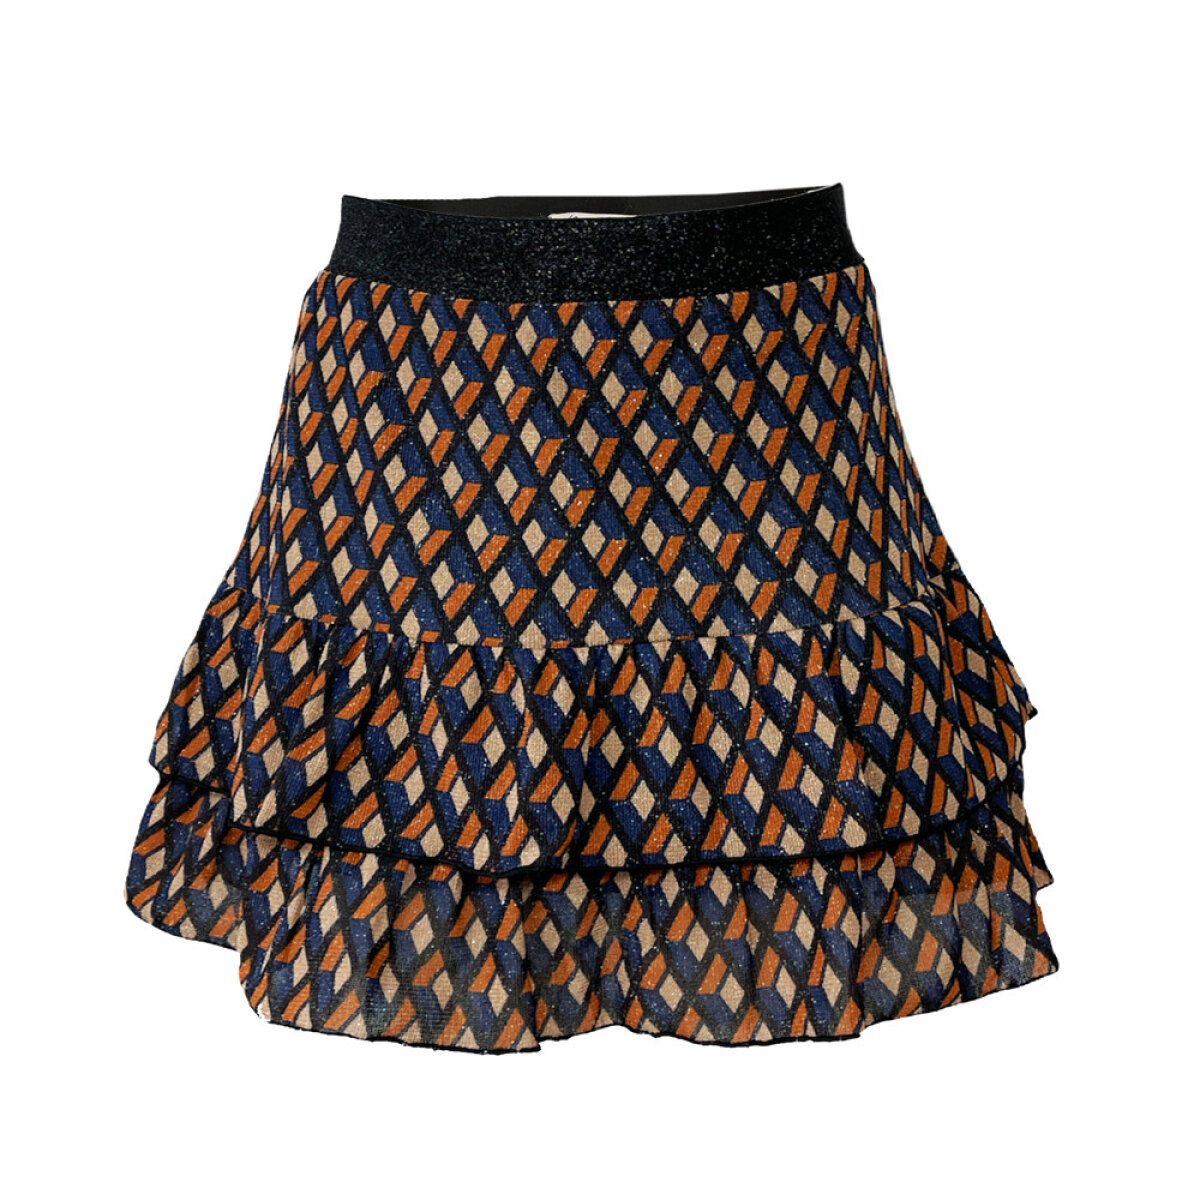 MISS T BY TOPitm rok AW21I-55 Mieke